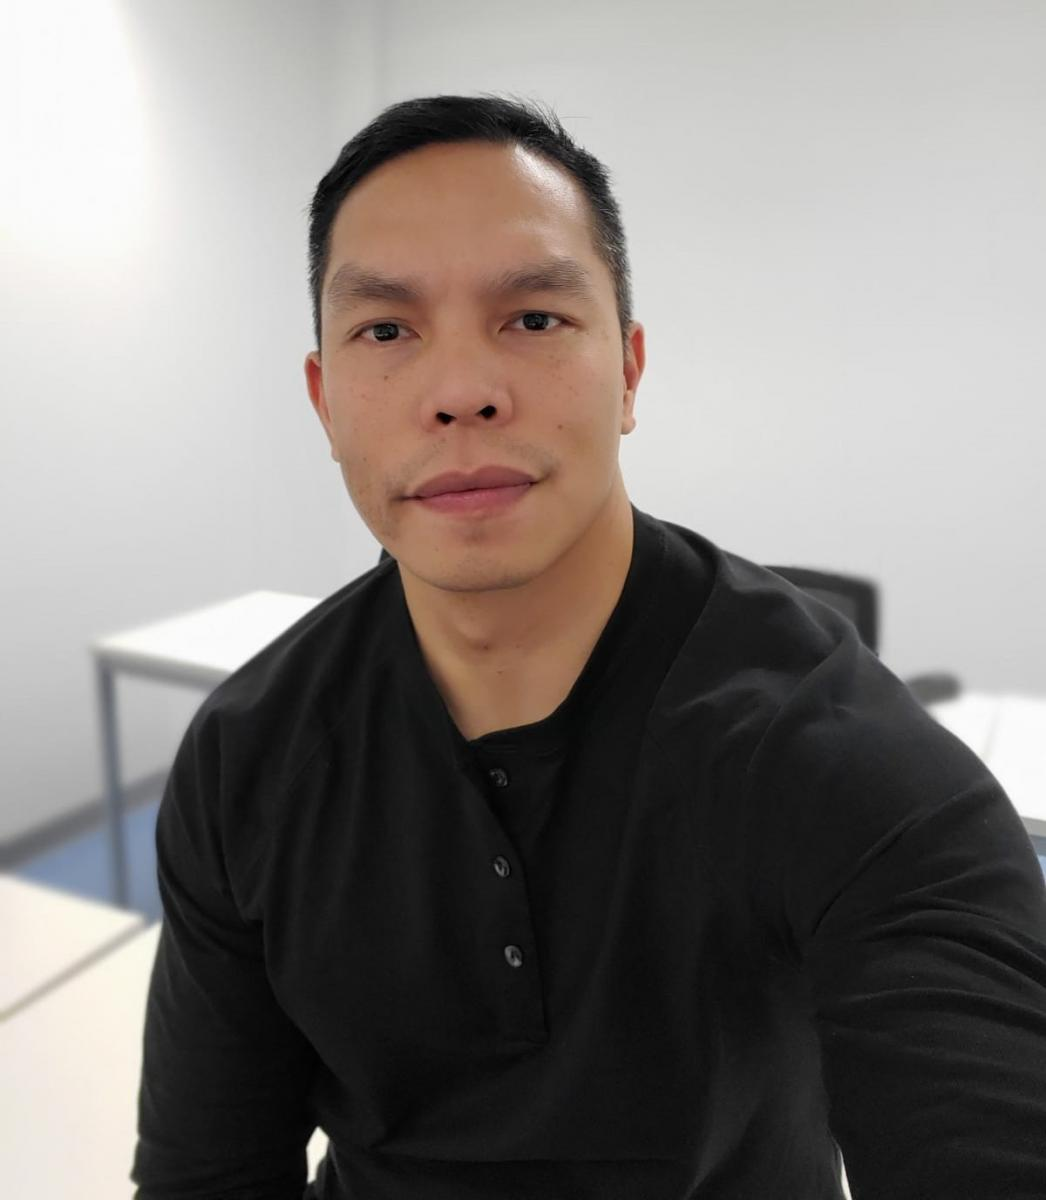 Paolo Alejandro Catilo, chief commercial officer of ORamaVR